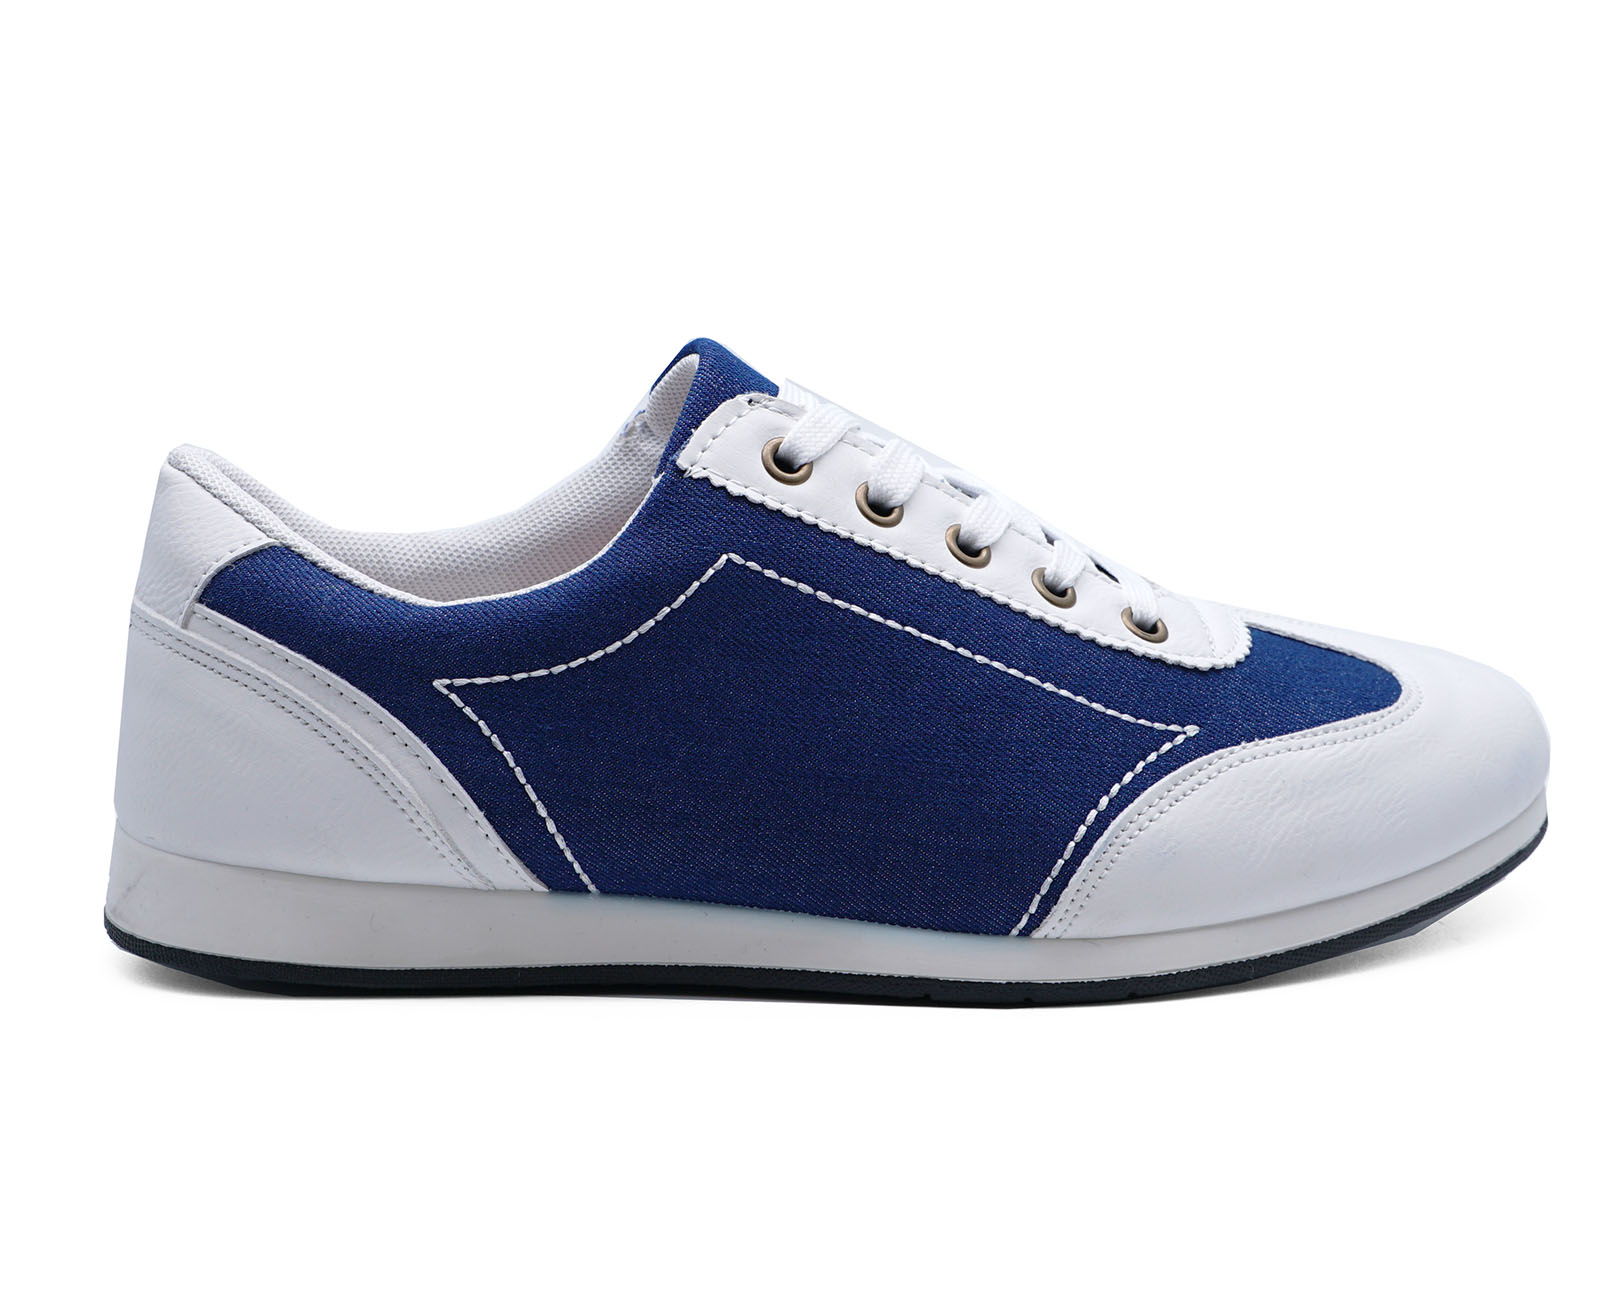 Mens White Lace Up Comfy Pumps Trainers Smart Bowling Style Shoes